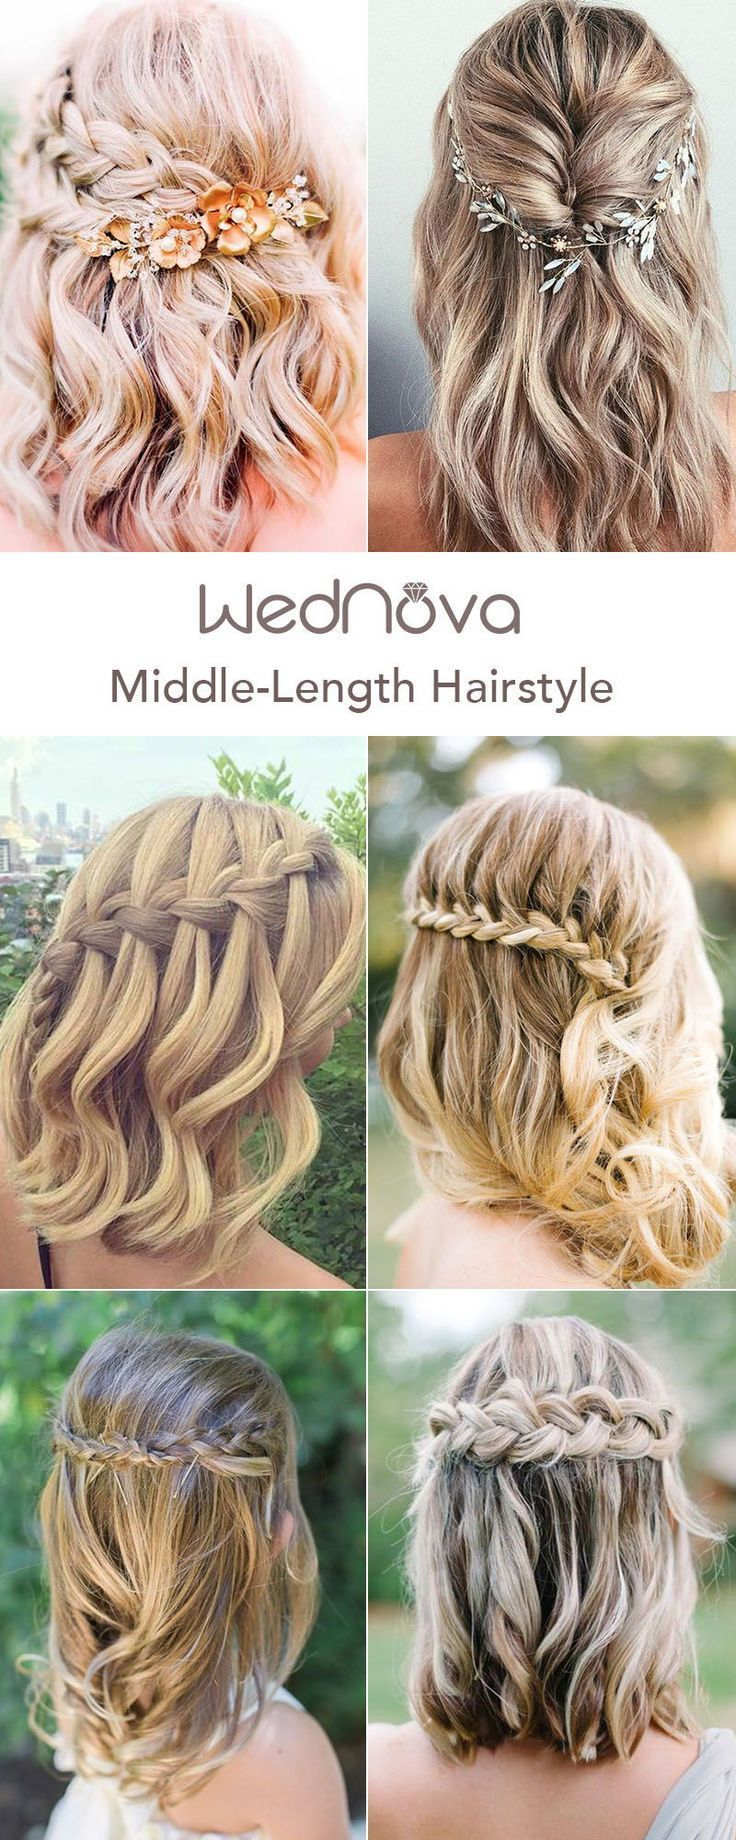 Eliminate Your Fears And Doubts About Bridal Hairstyles For Shoulder Length Hair In 2020 Short Wedding Hair Bridesmaid Hair Medium Length Half Up Half Down Short Hair